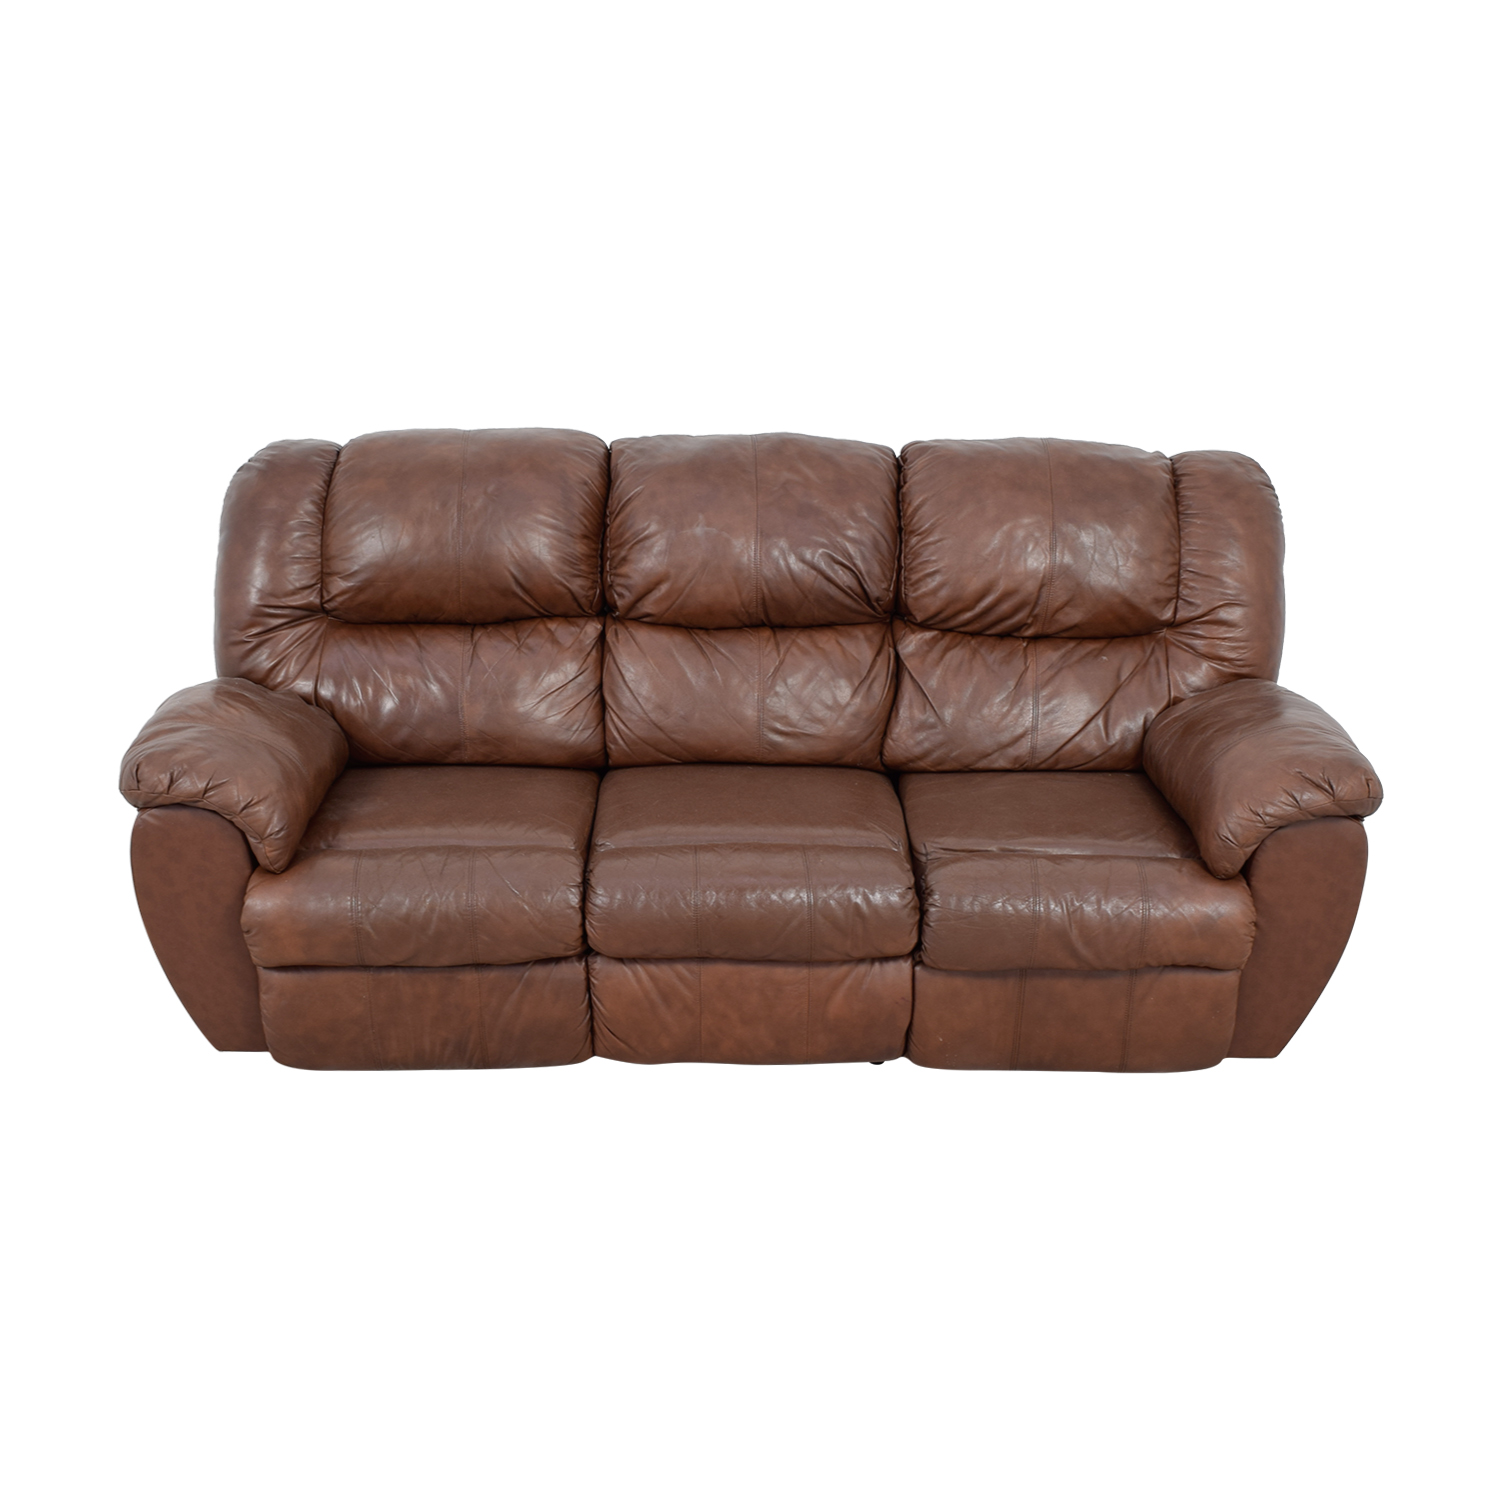 Ashley Furniture Ashley Furniture Dual Reclining Brown Leather Couch second hand